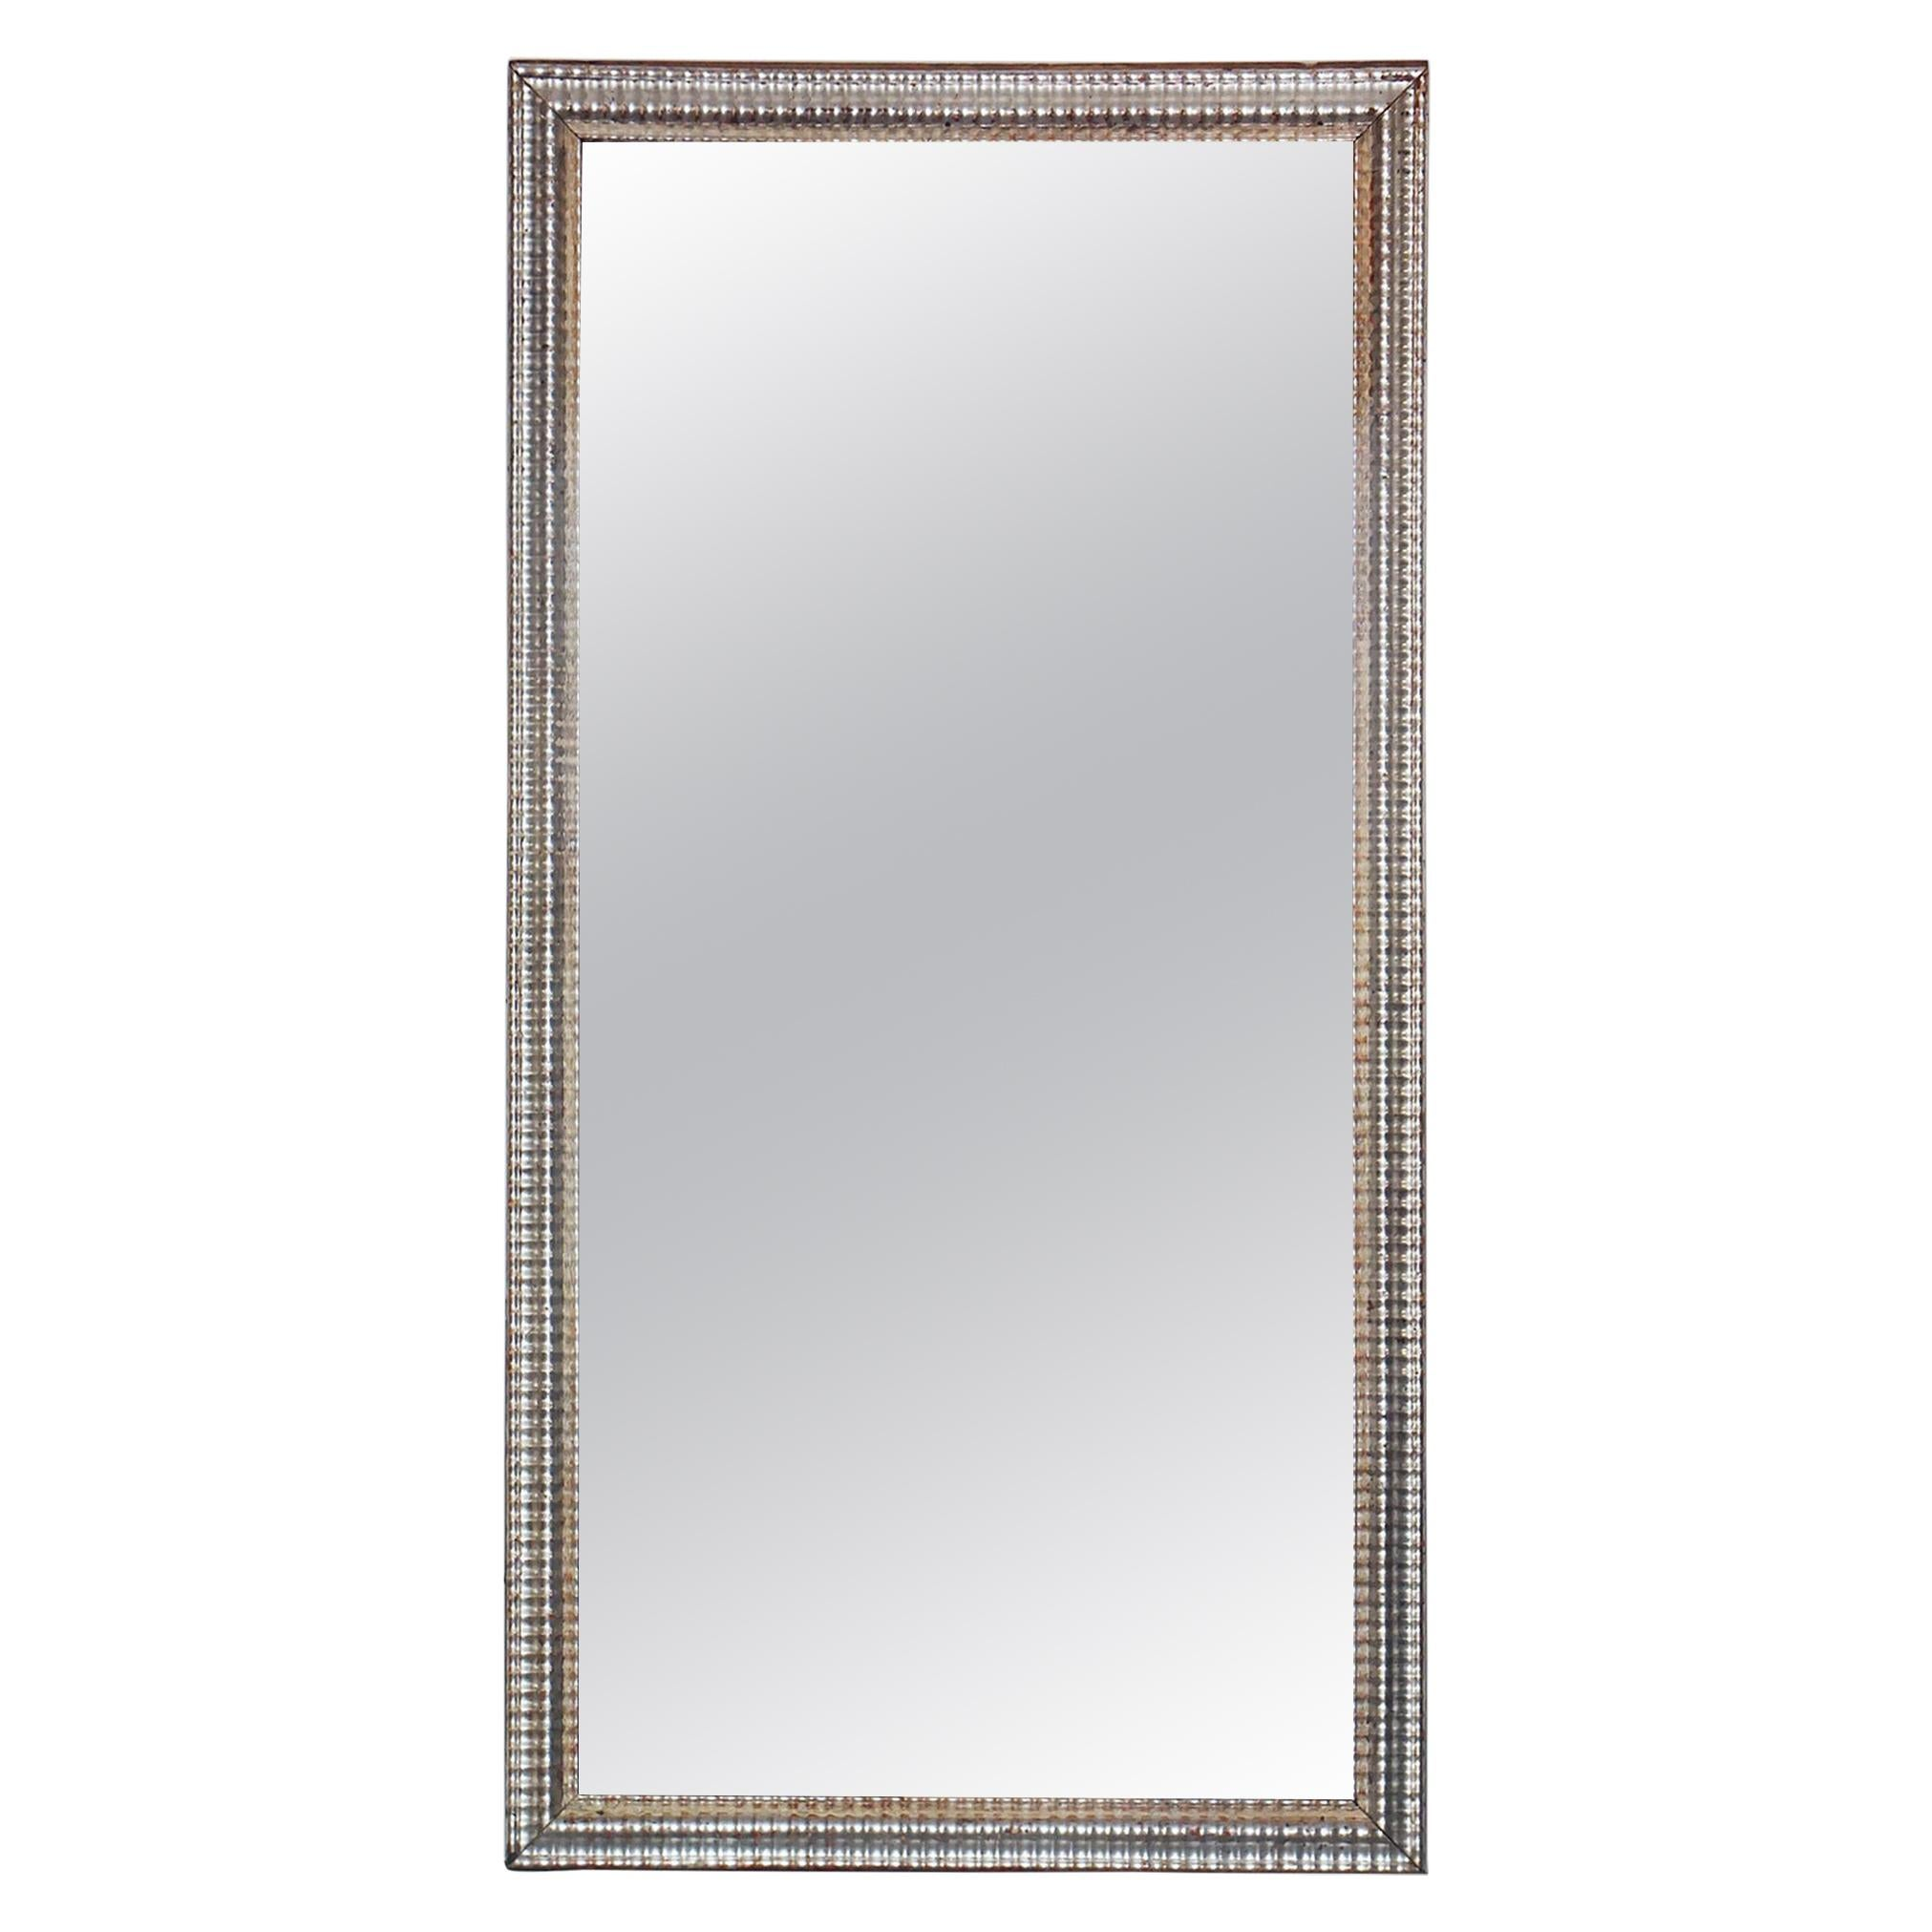 Large French Rectangular Silver Gilt Wall Mirror (52 1/2 x 26 3/4)